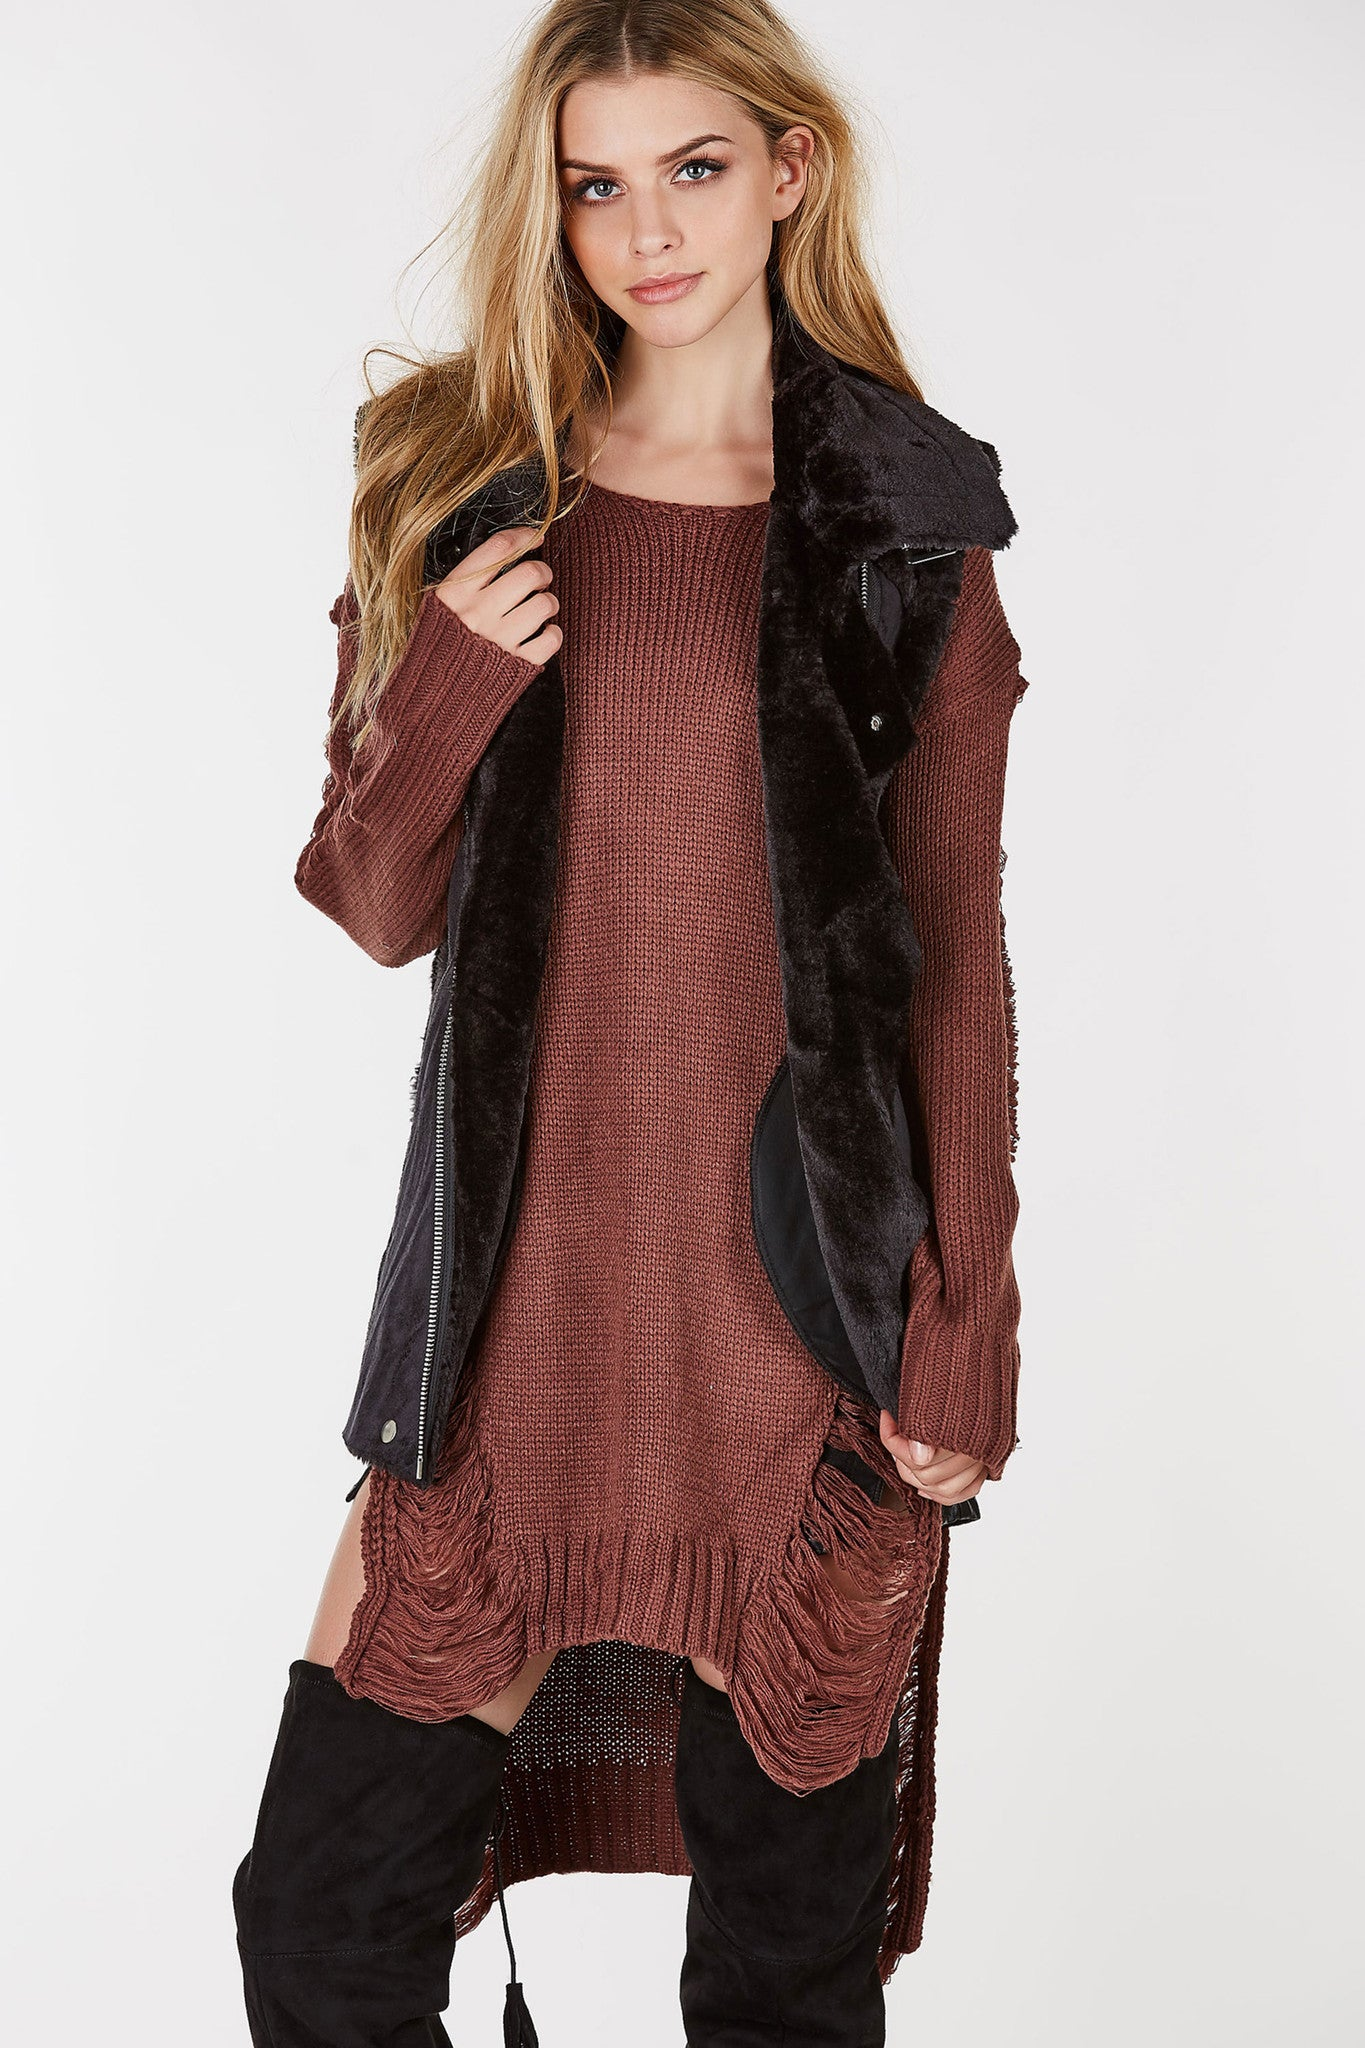 Suede moto vest with fur lining.  Longline fit with zipper pockets in front.